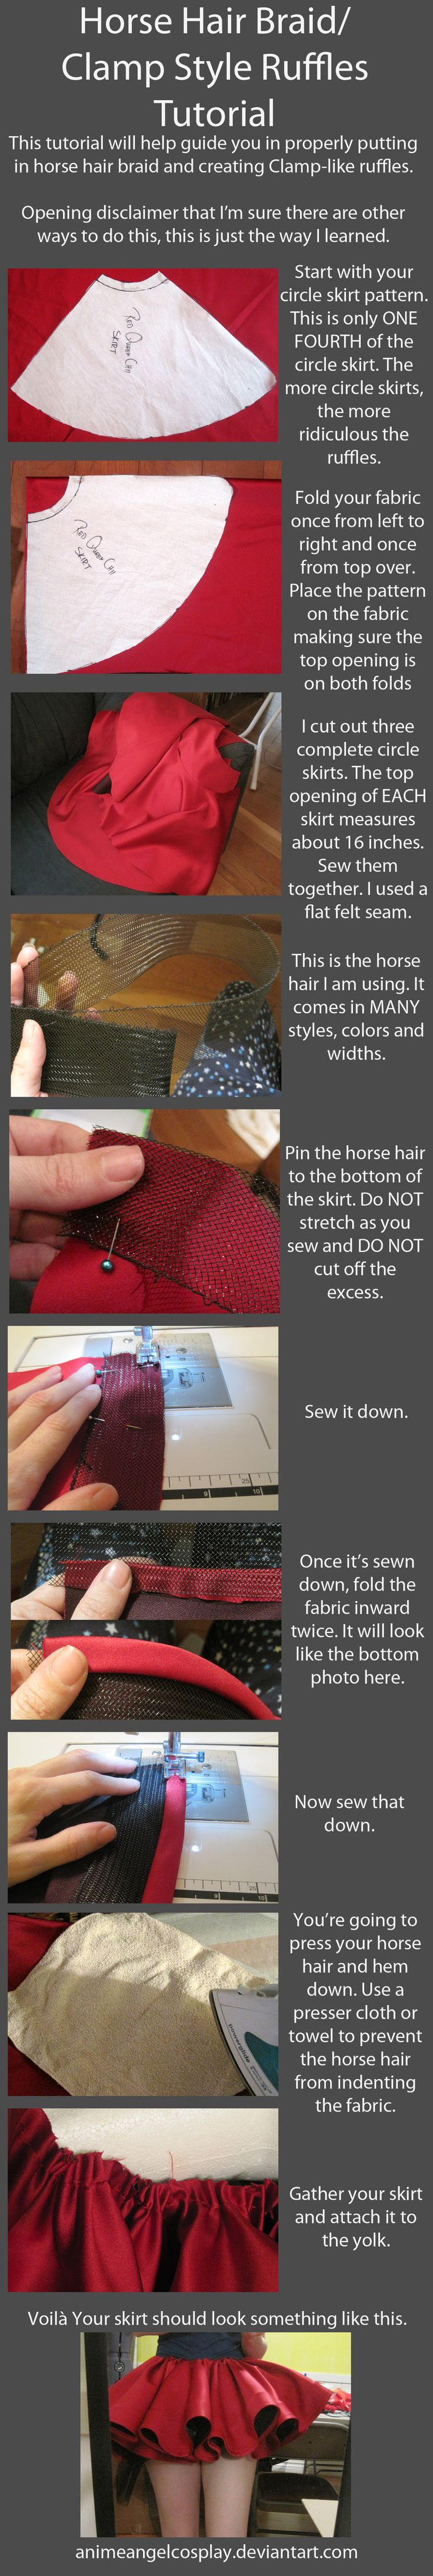 Tutorial-Putting in Horse Hair Braid/CLAMP Ruffles by *RuffleButtCosplay on deviantART #cosplay #sewing